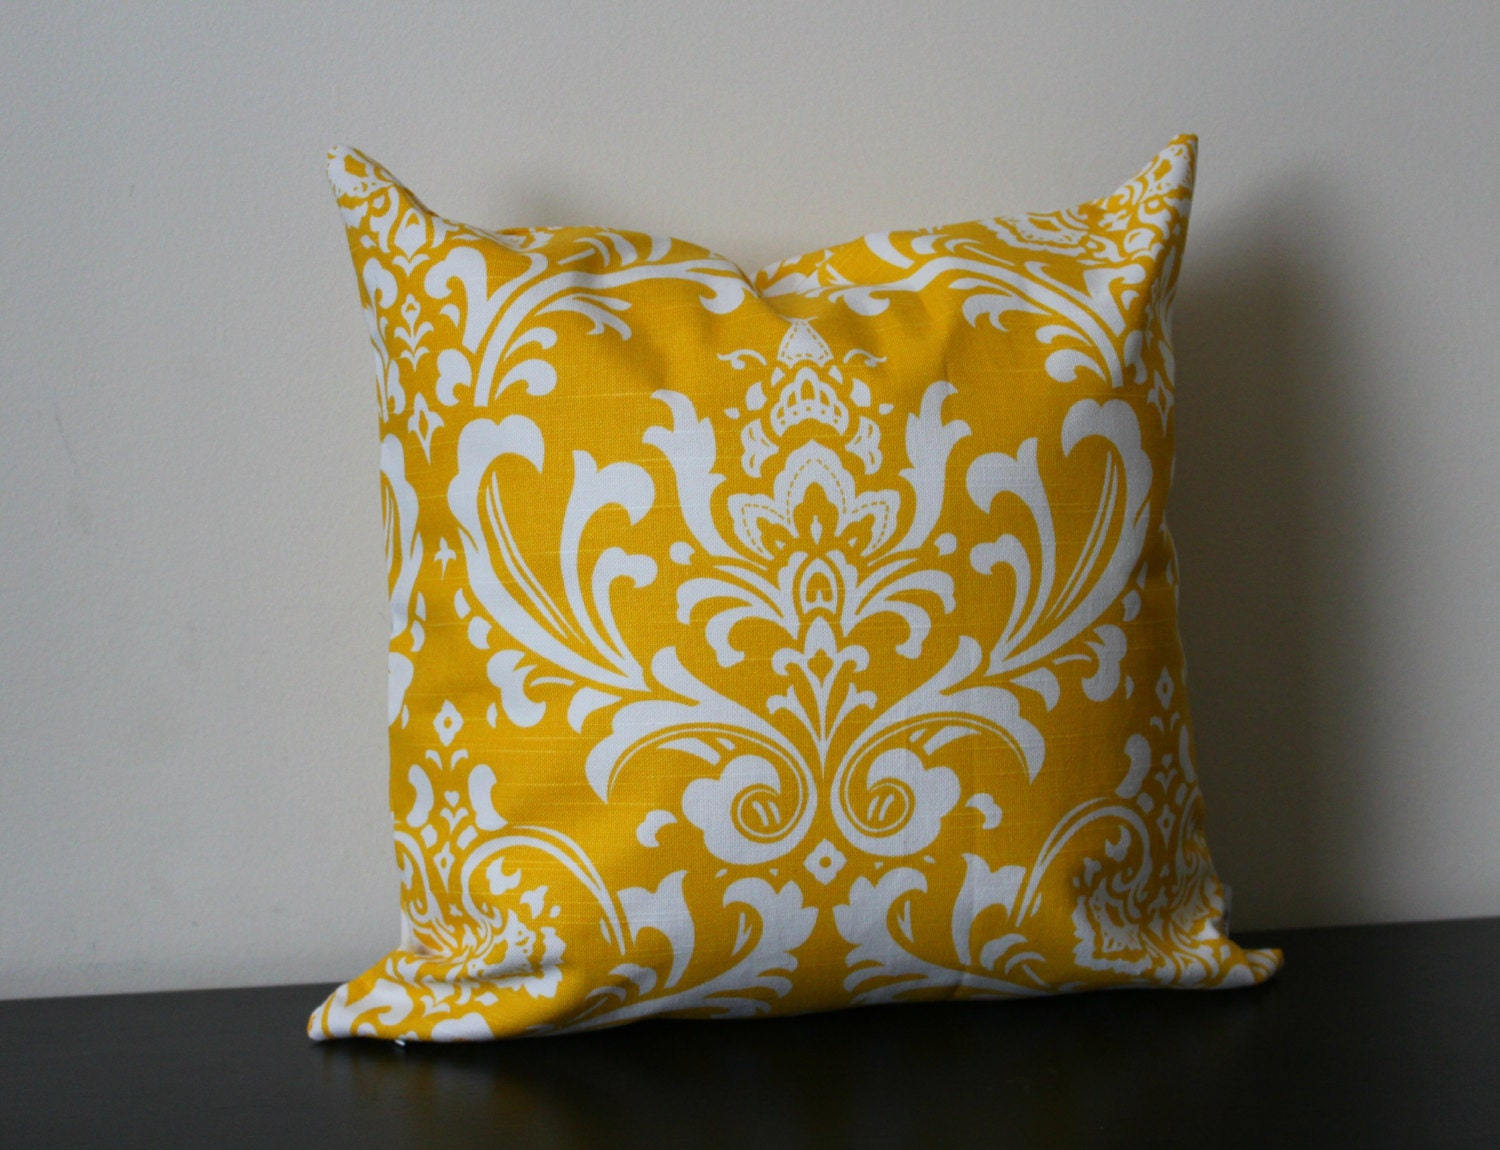 Decorative Throw Pillow Cover Yellow and White Damask